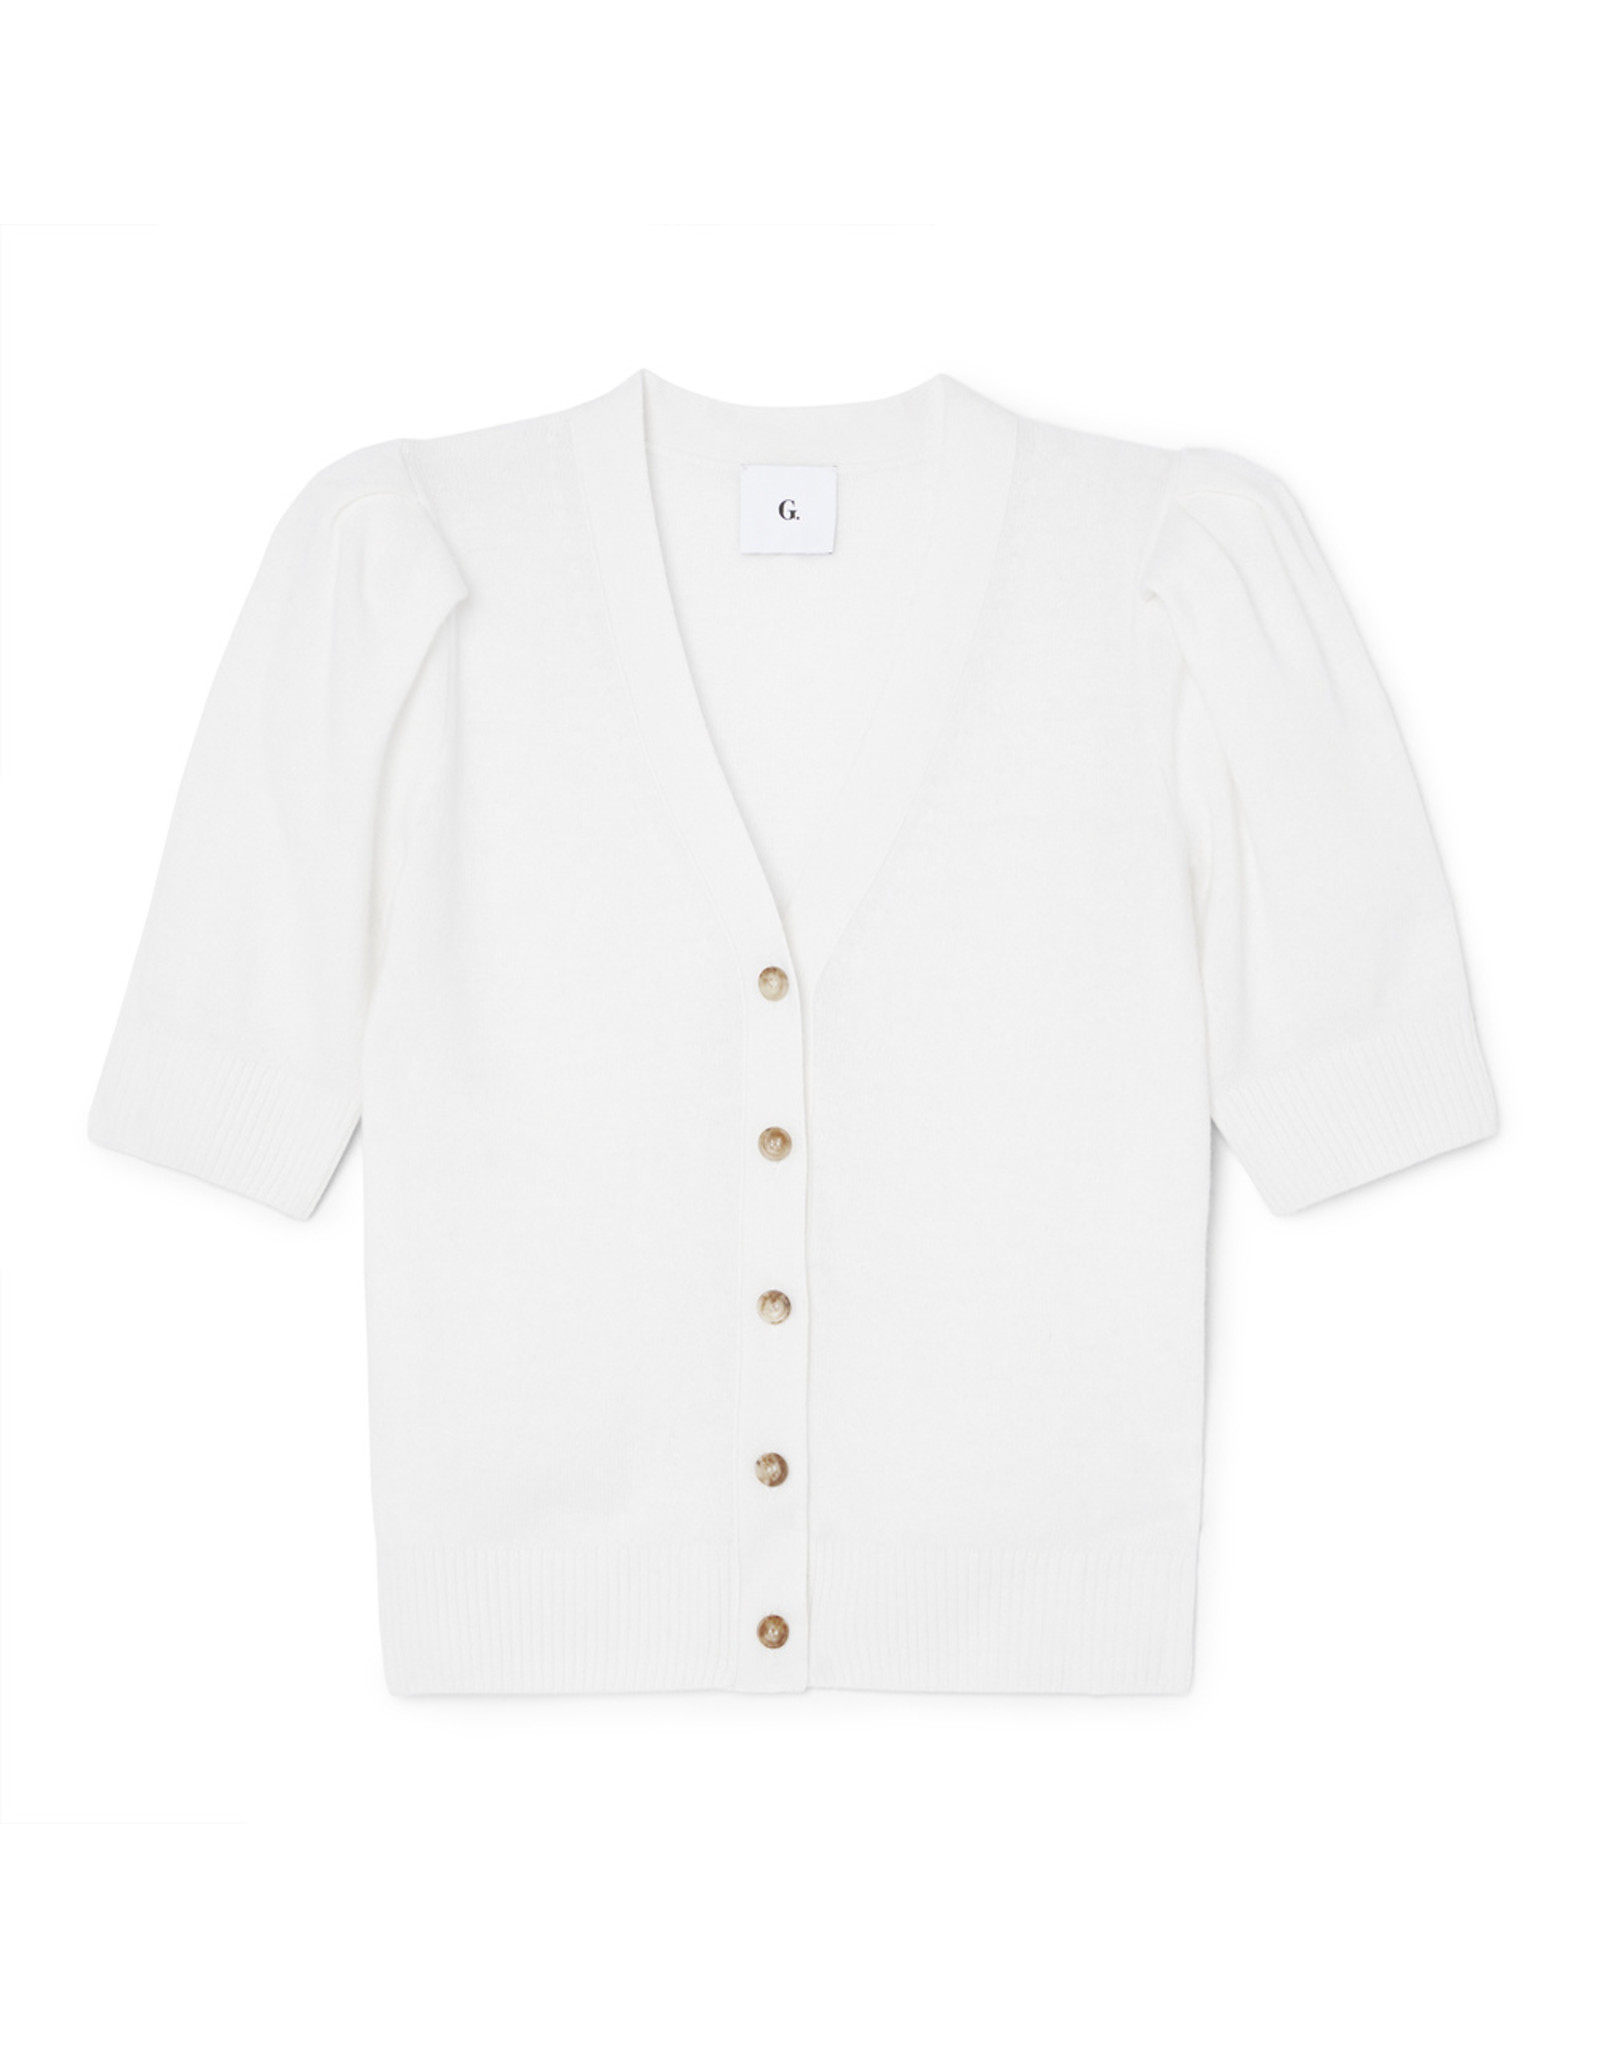 G. Label G. Label Juliette Short Sleeve Cardigan (Size: XL, Color: Ivory)